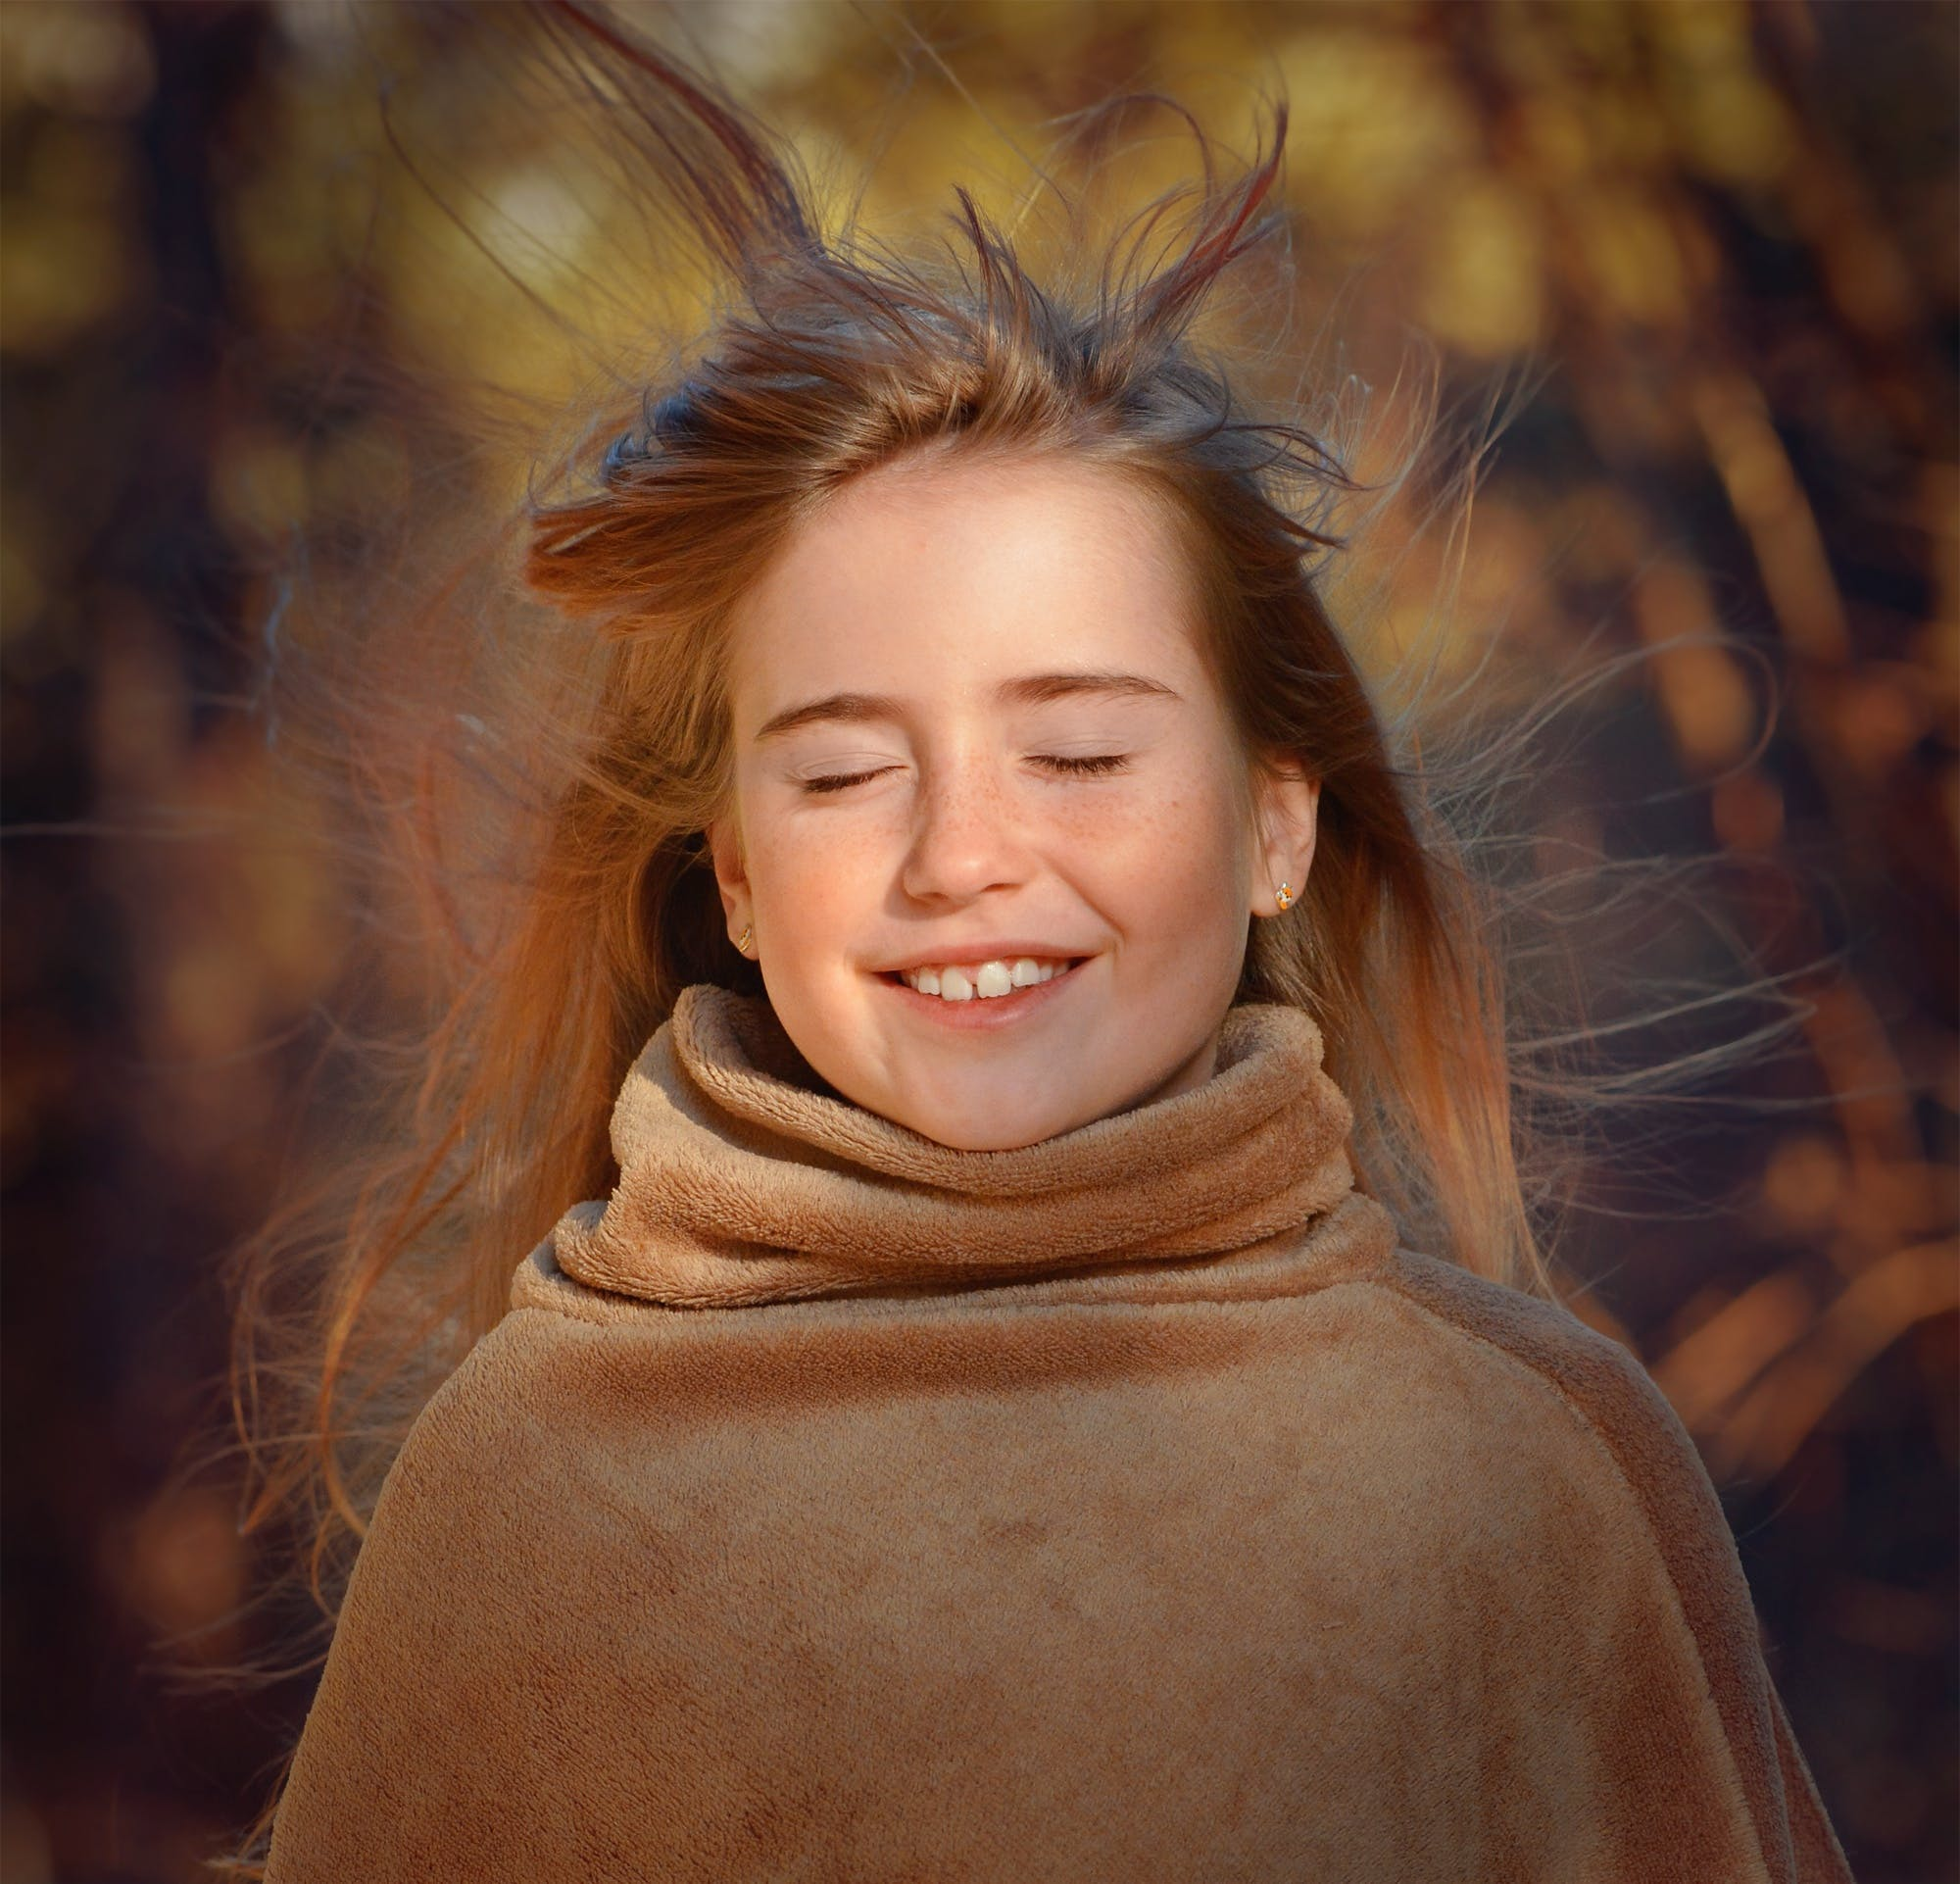 Hair Blowing on Smiling Girls Face Wearing Brown Coat